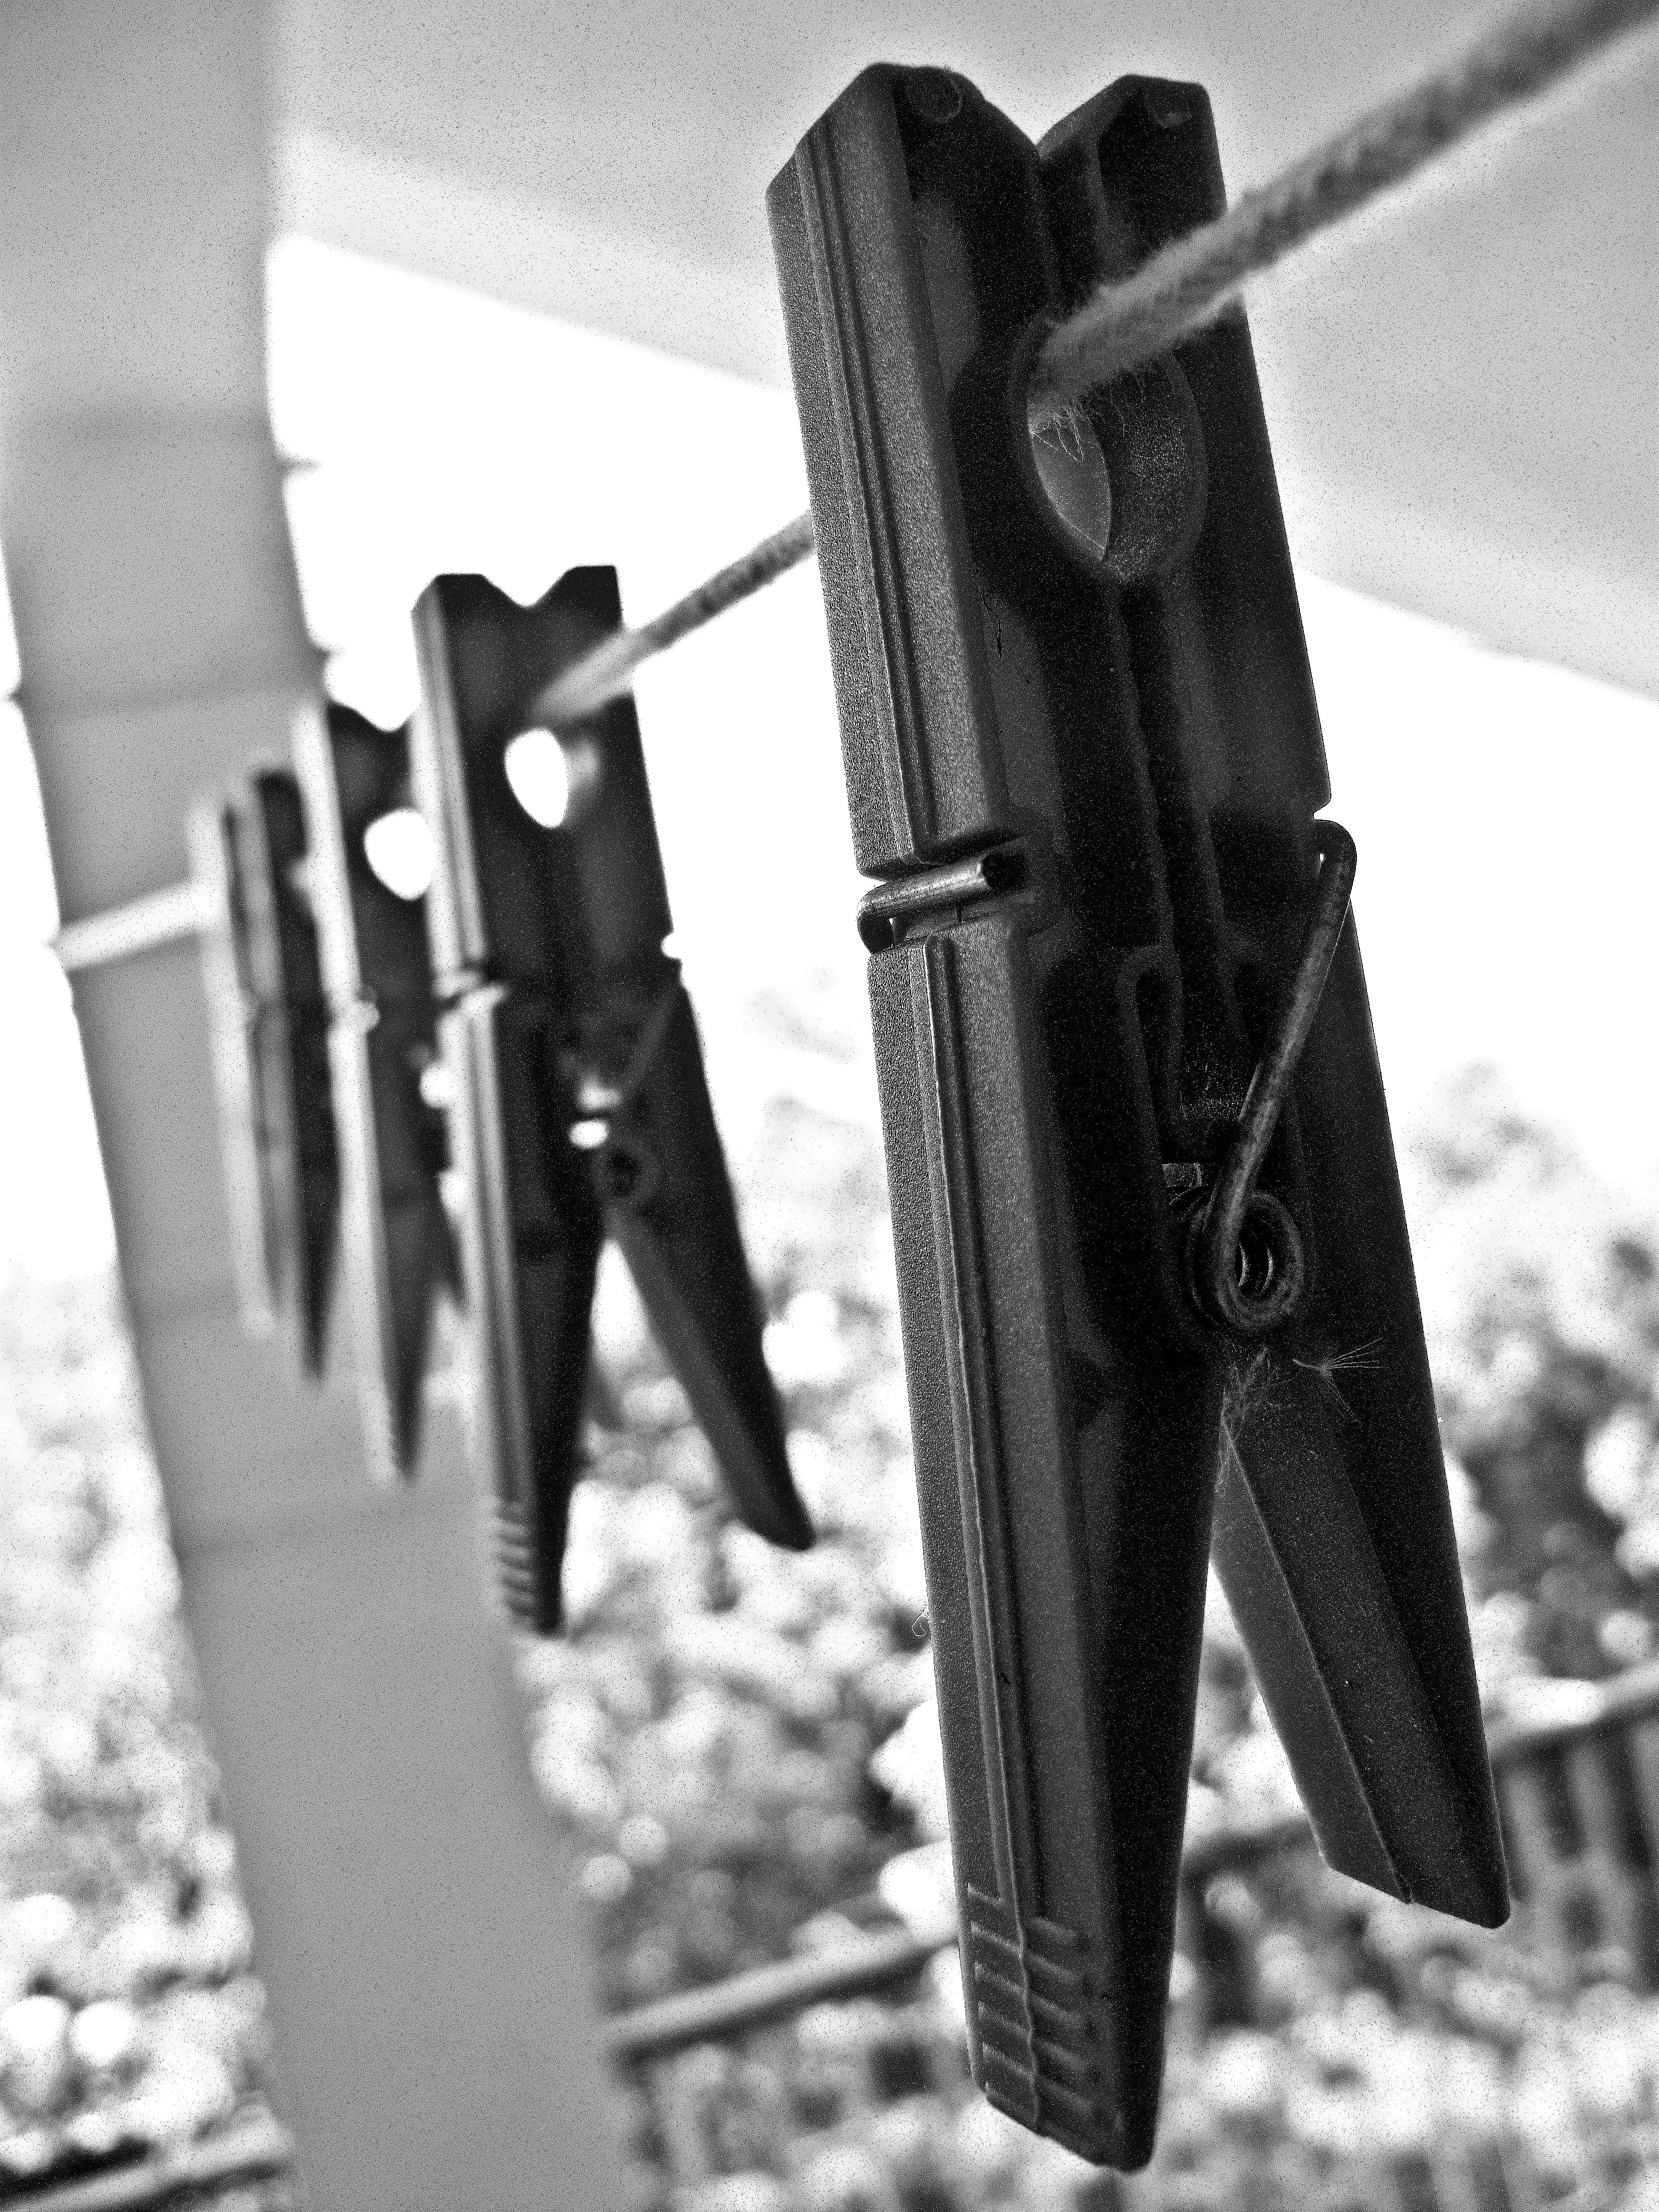 Grayscale Photography of Clothespins